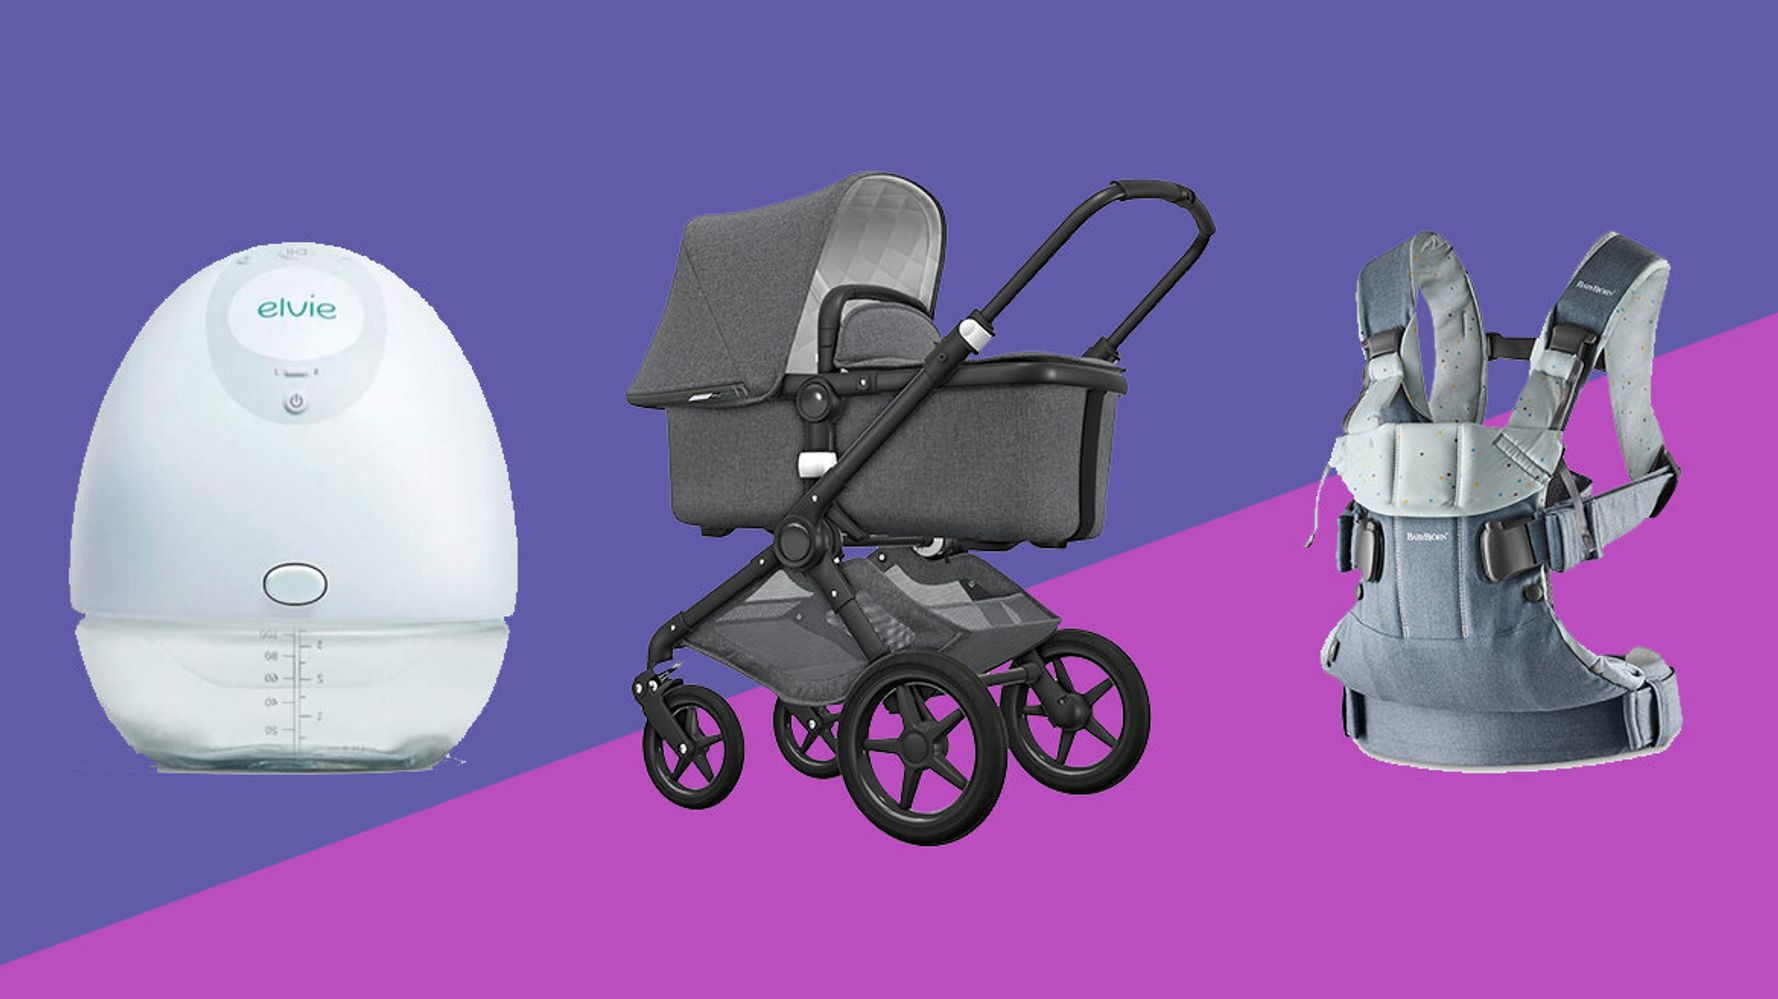 Best Black Friday Baby Deals On Clothes, Prams And More